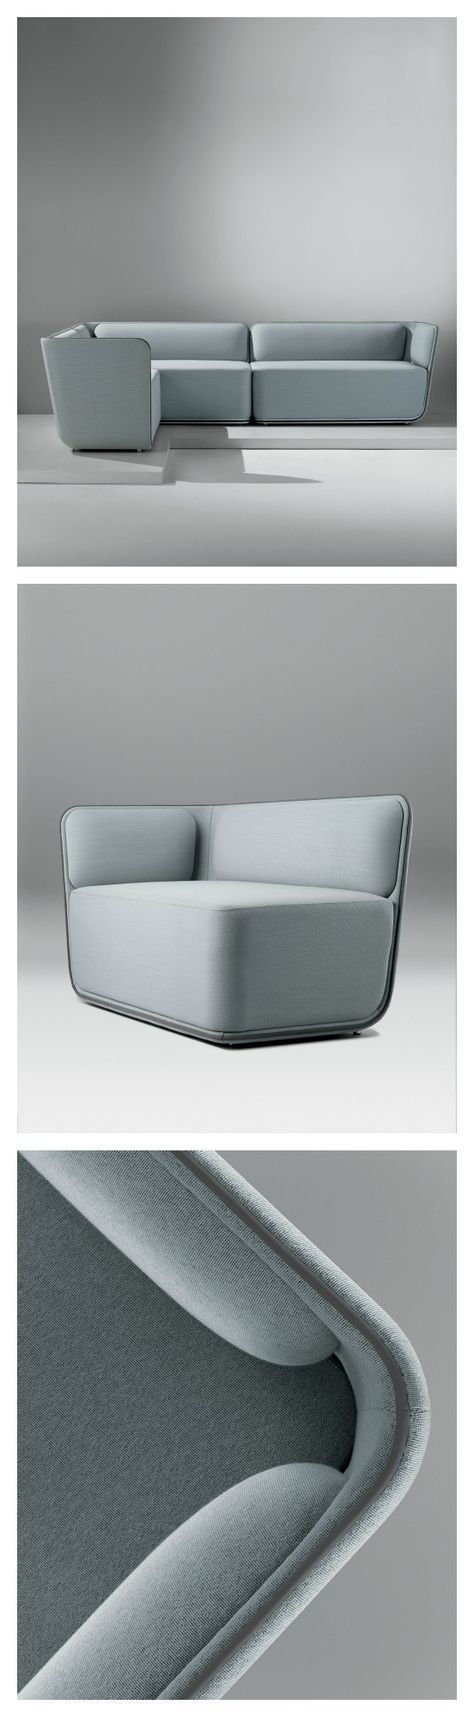 The Elle lounge chair, sofa, and modular seating share continuous lines that convey fluidity and motion, inspired by the energy of skateboarding. Planes and lines combine for a youthful elegance and a fresh style.